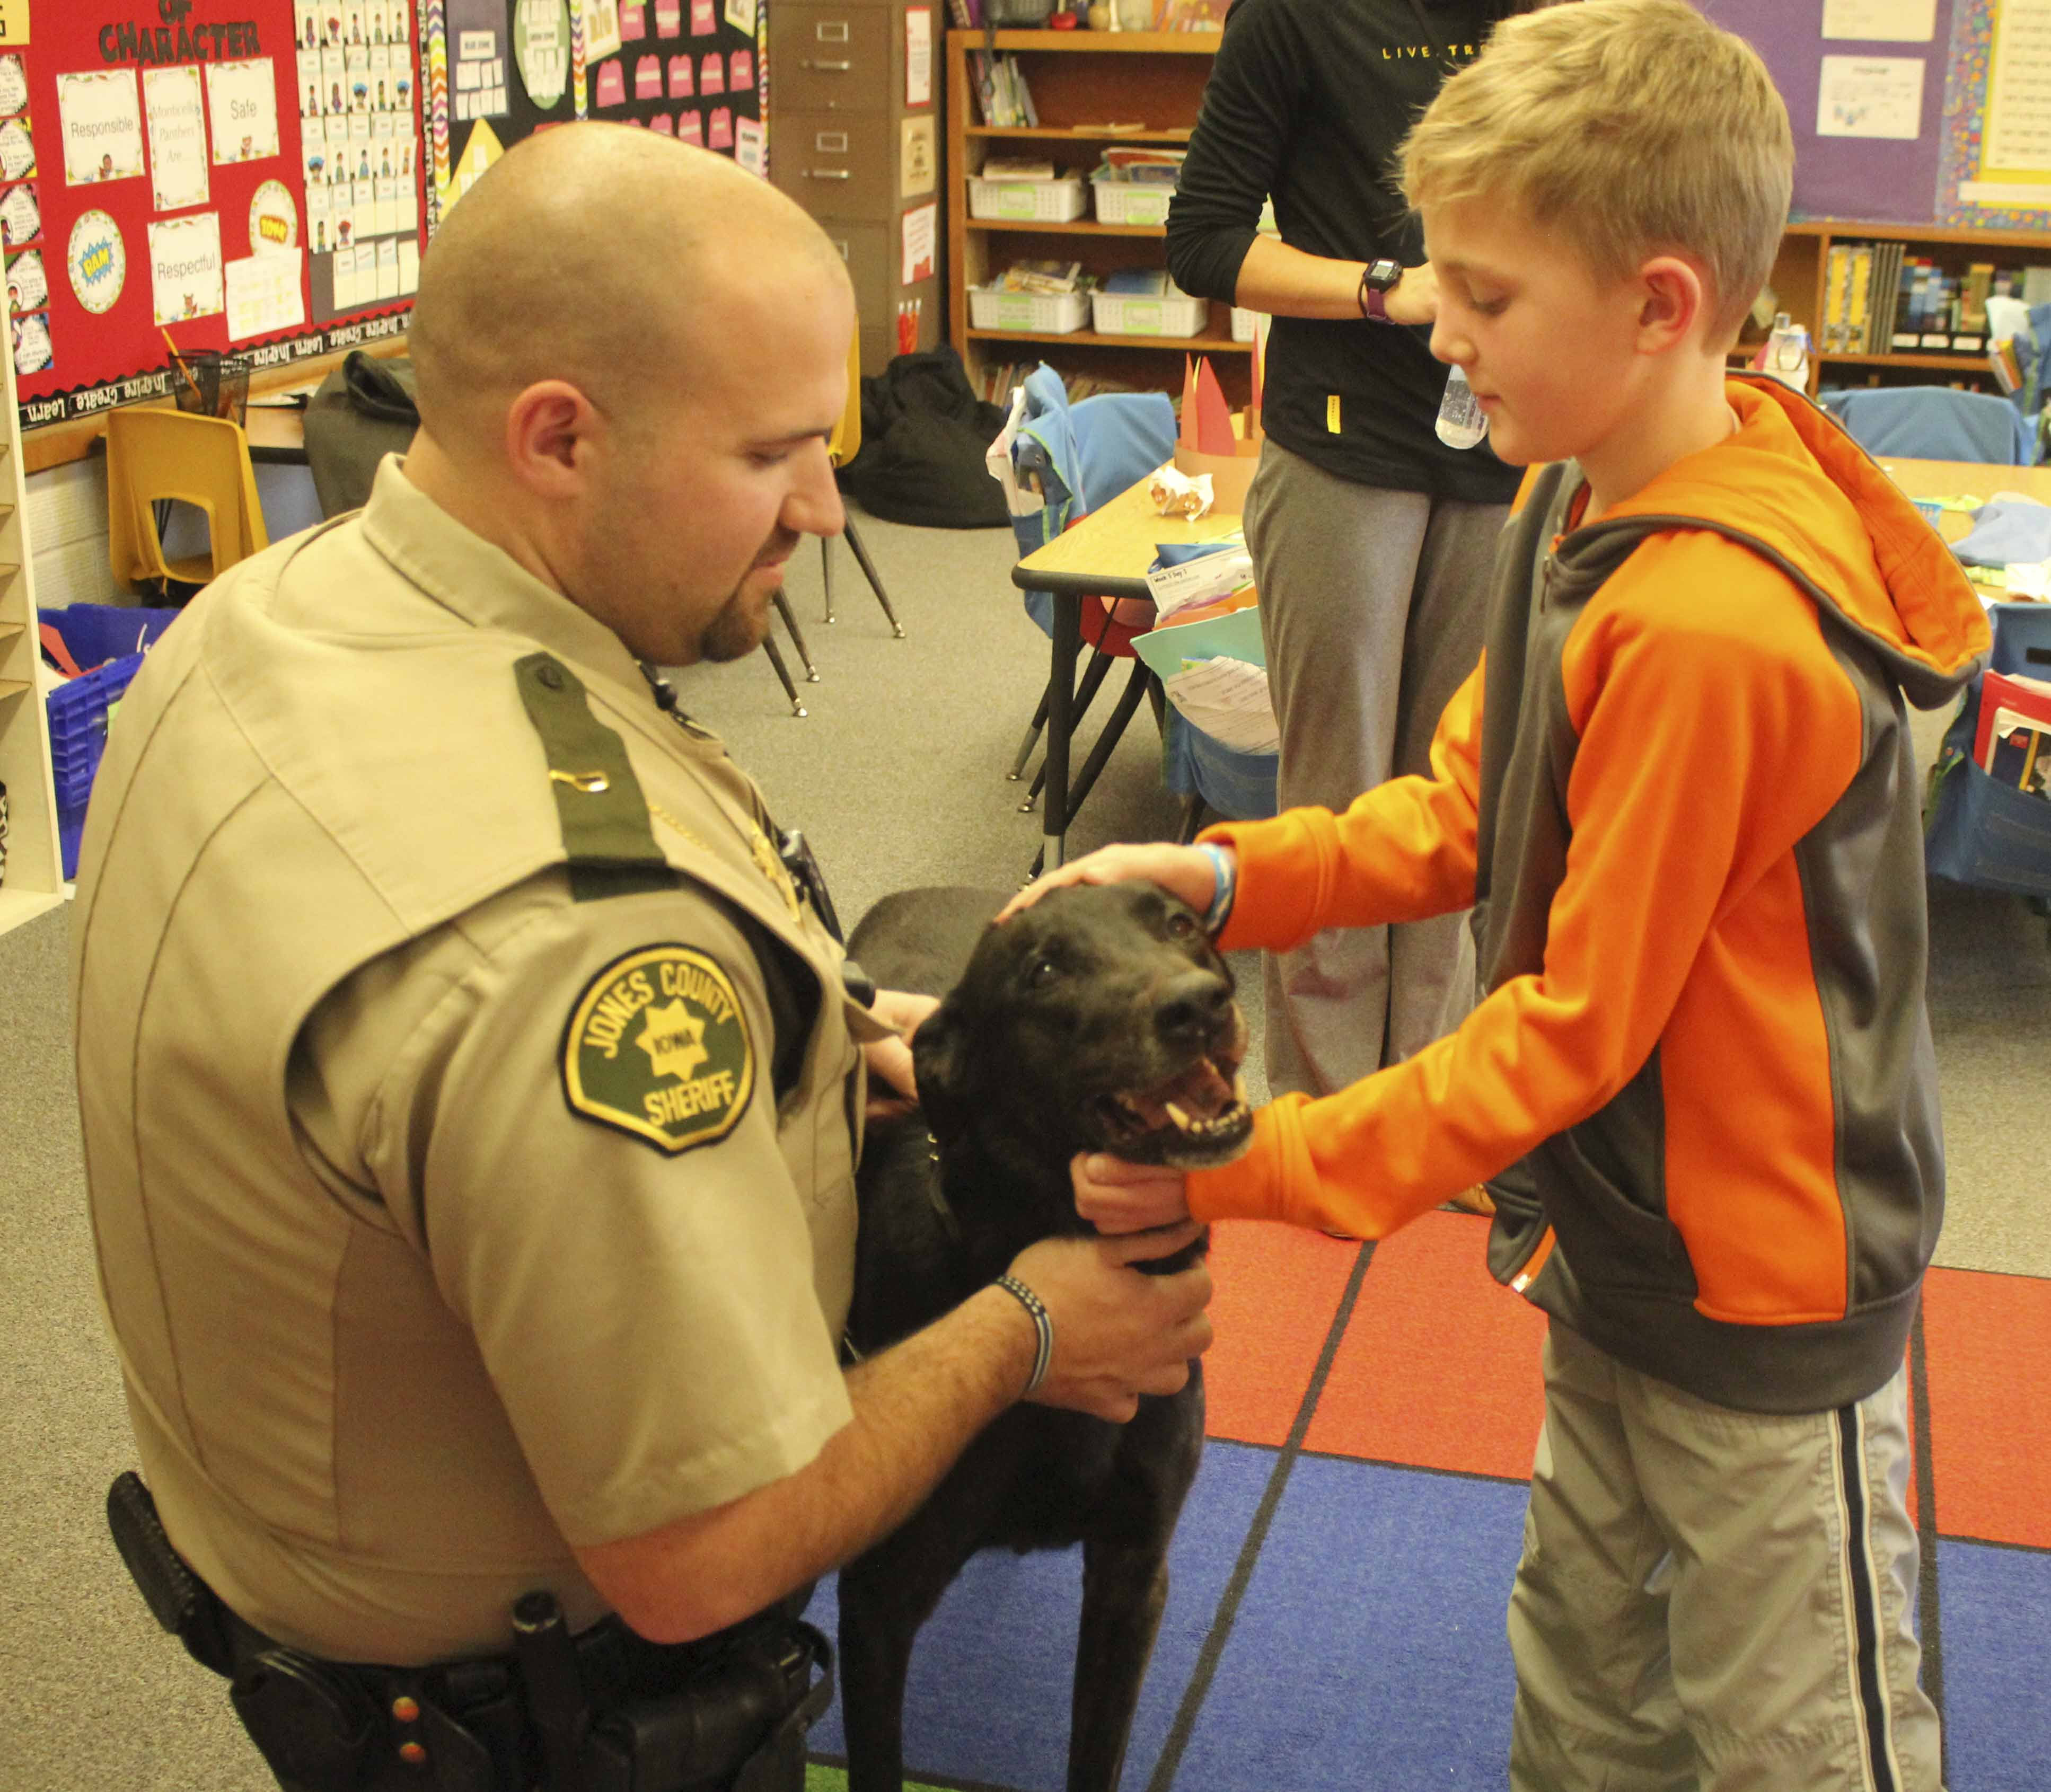 Carpenter Elementary School second-grader MacKendrick Burkle pets Loki, the K-9 dog who visited the school Nov. 21 with Jones County Sheriff's Deputy Derek Denniston. The class had been reading a book about a police search dog, and for the students' Panther Paw reward, they voted to have Loki visit. (Photos by Pete Temple)